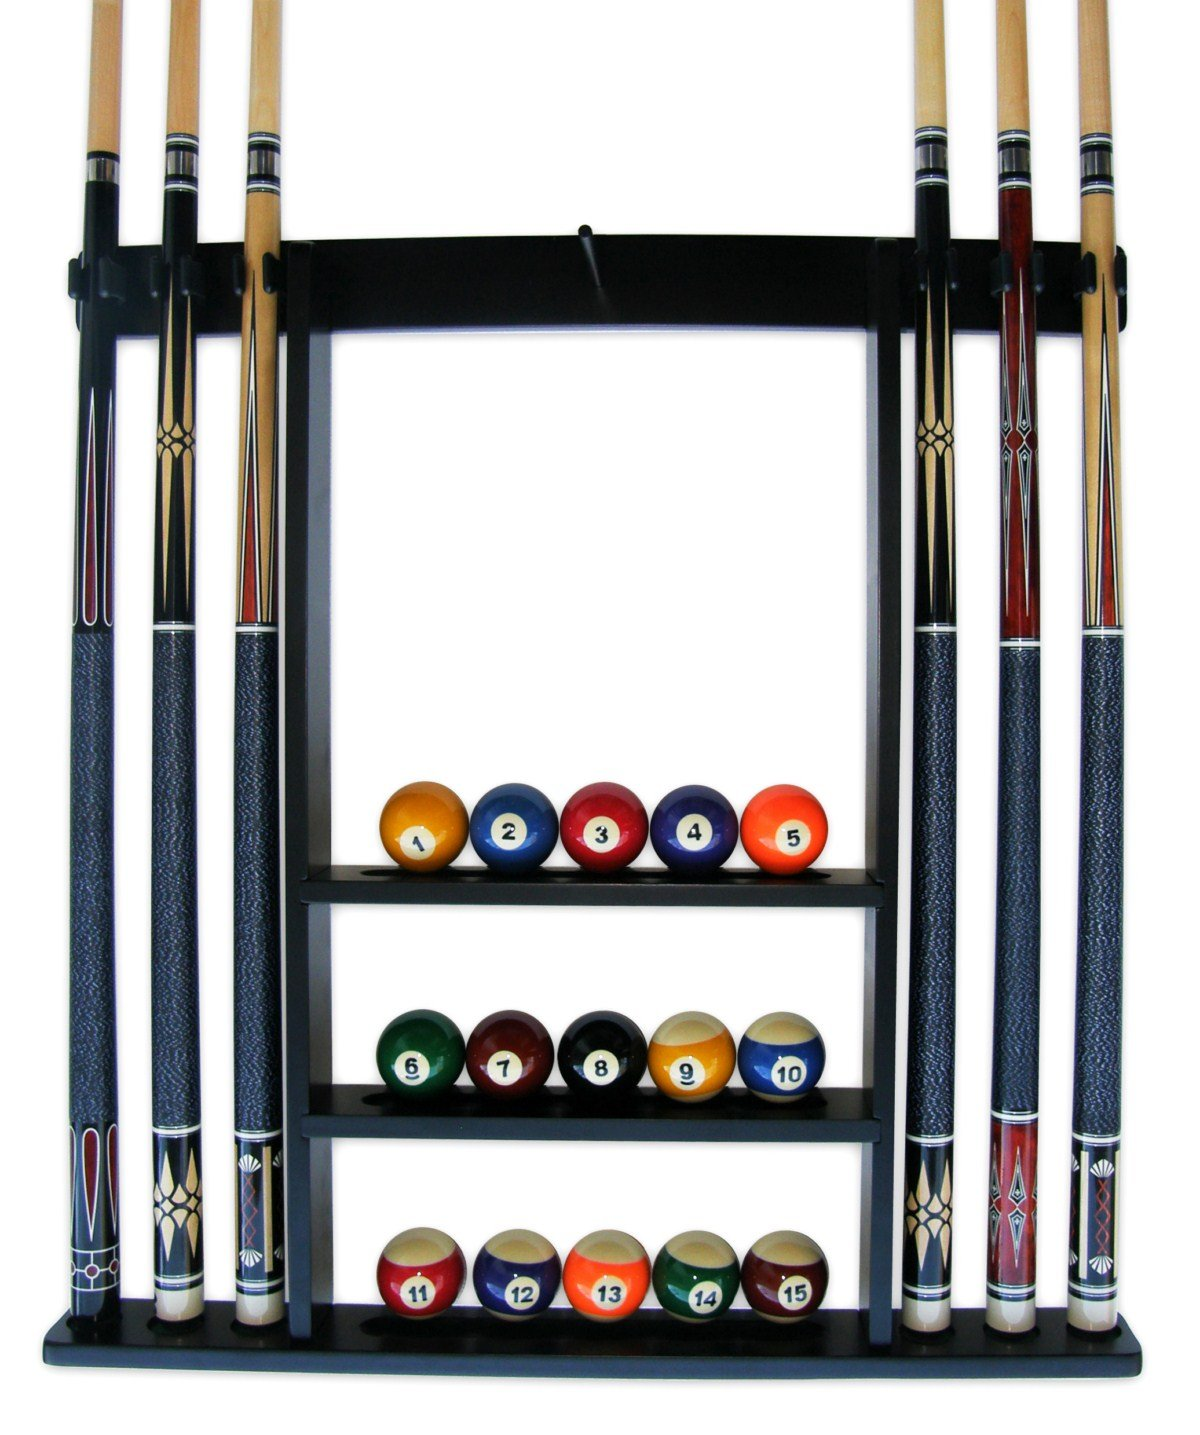 Iszy 6 Pool Cue-Billiard Stick Wall Rack Made Of Wood